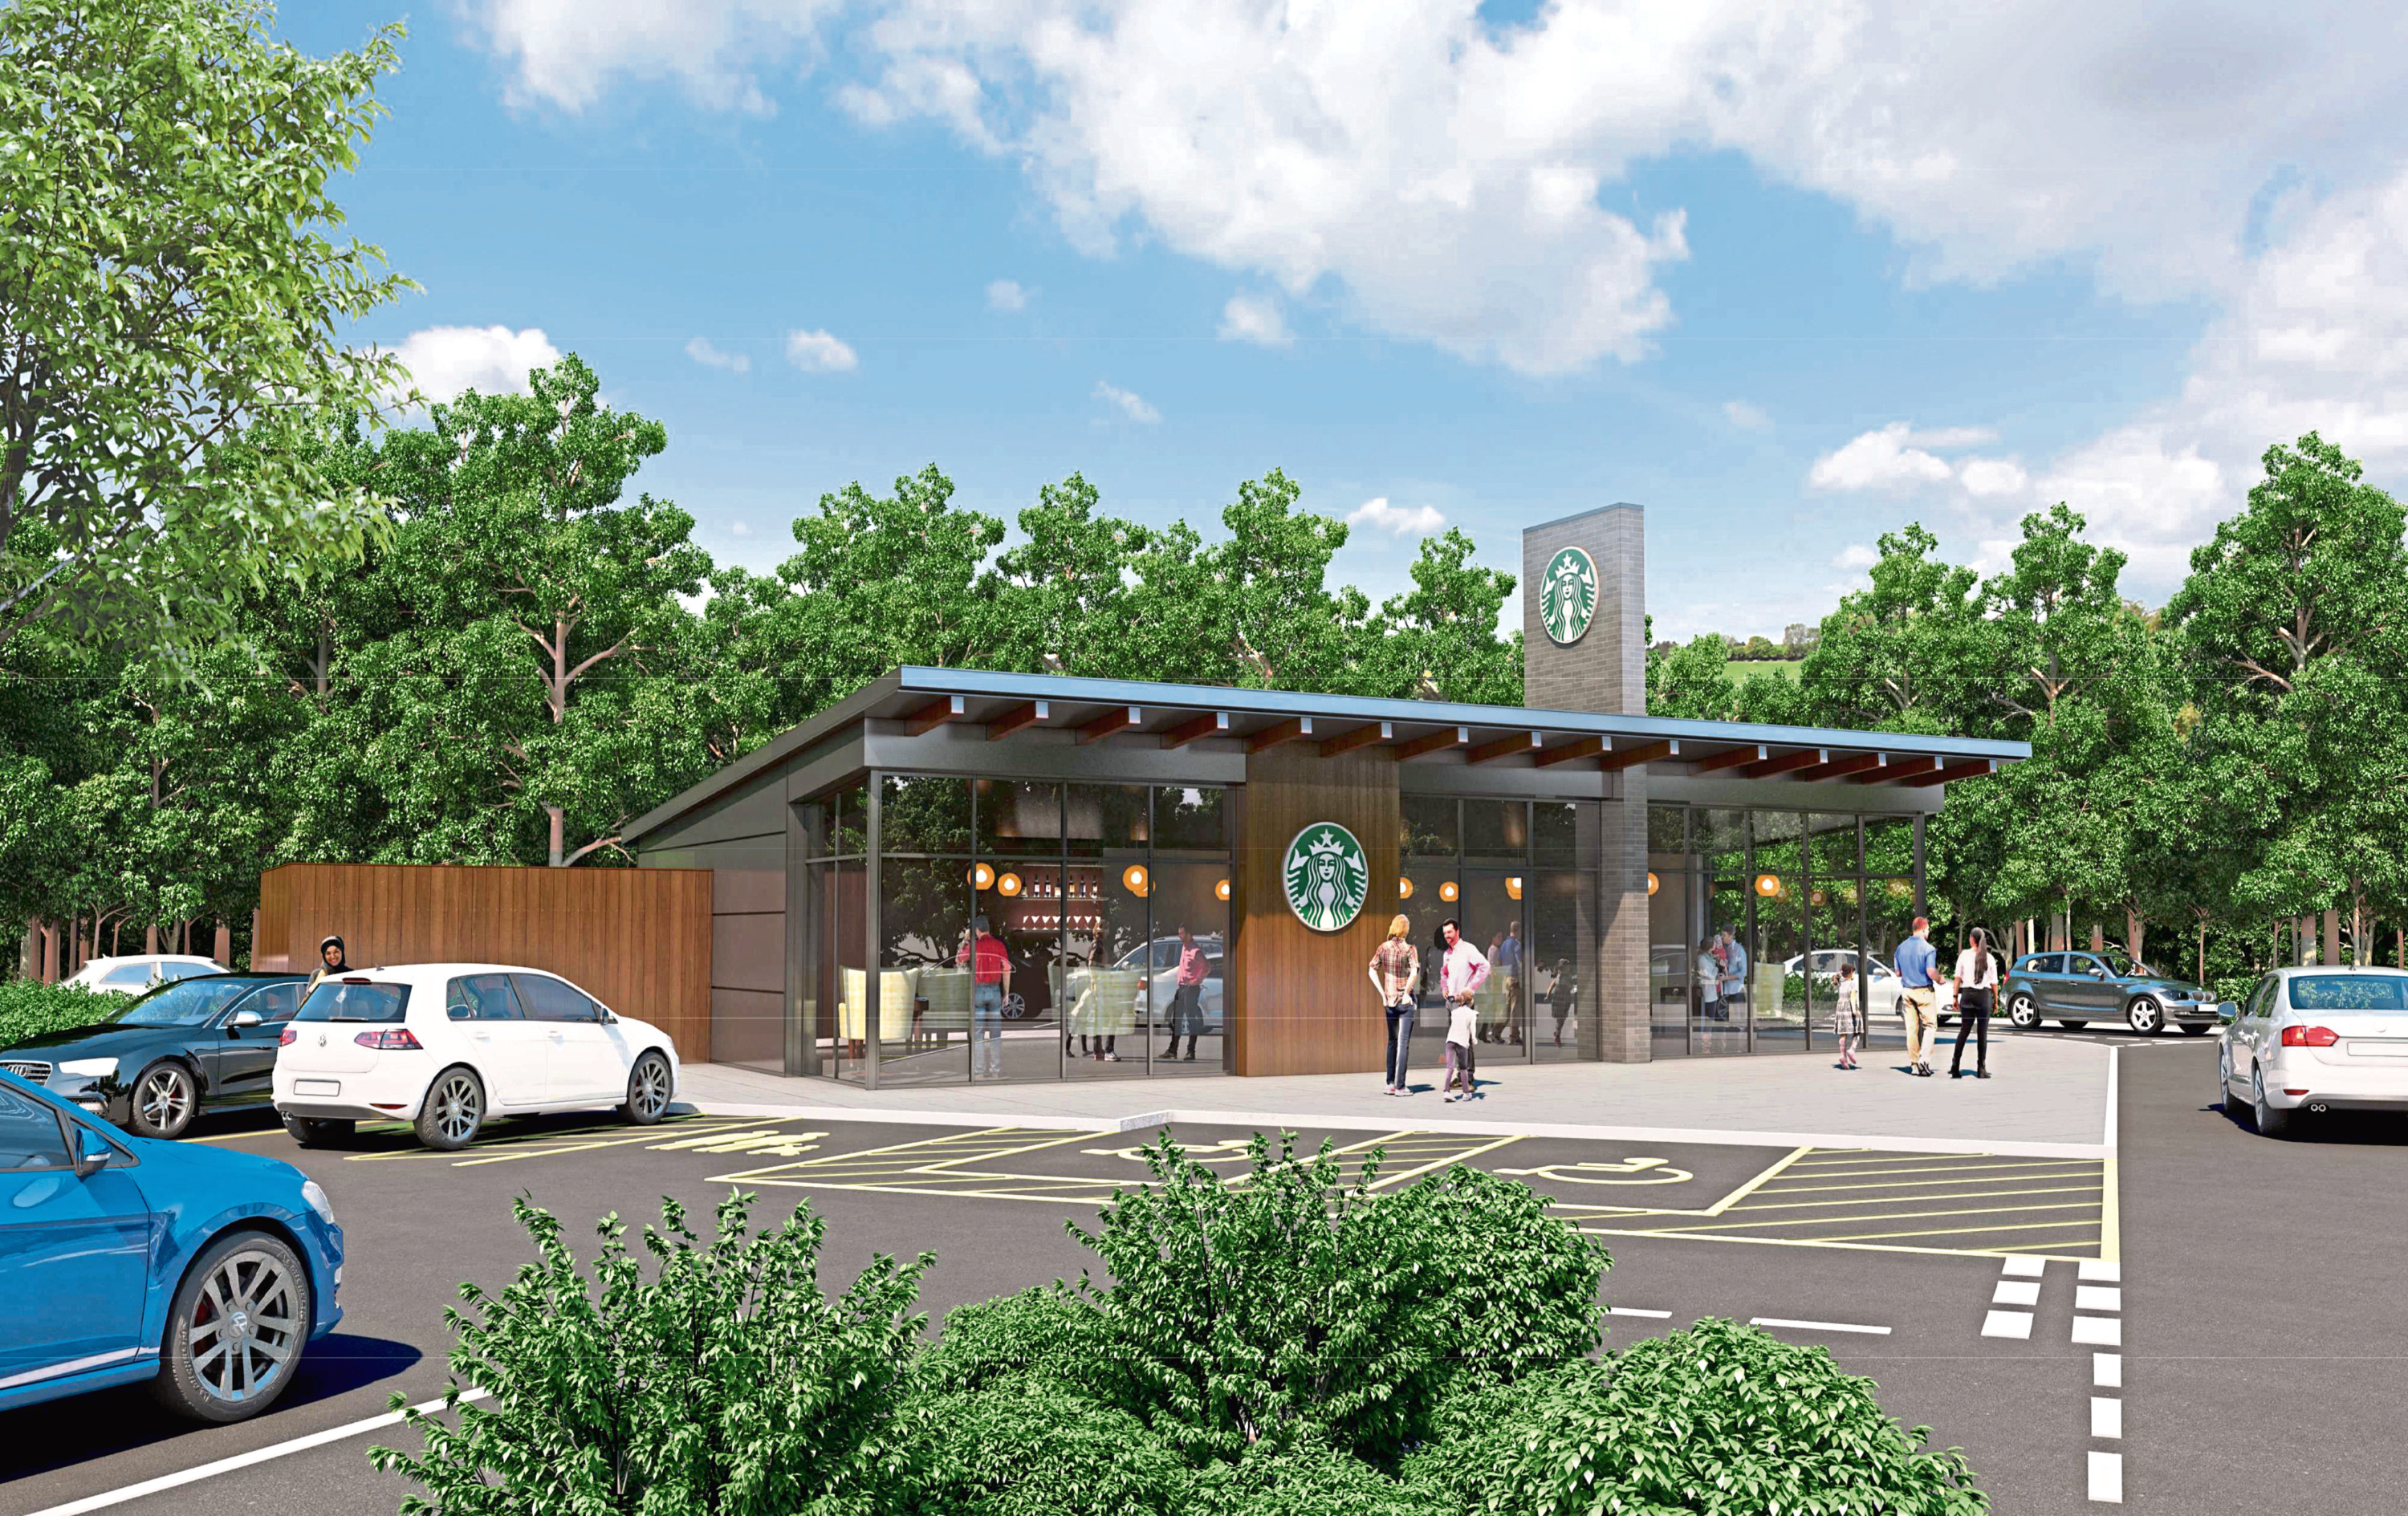 Artists illustration of the proposed new Starbucks on Afton Way